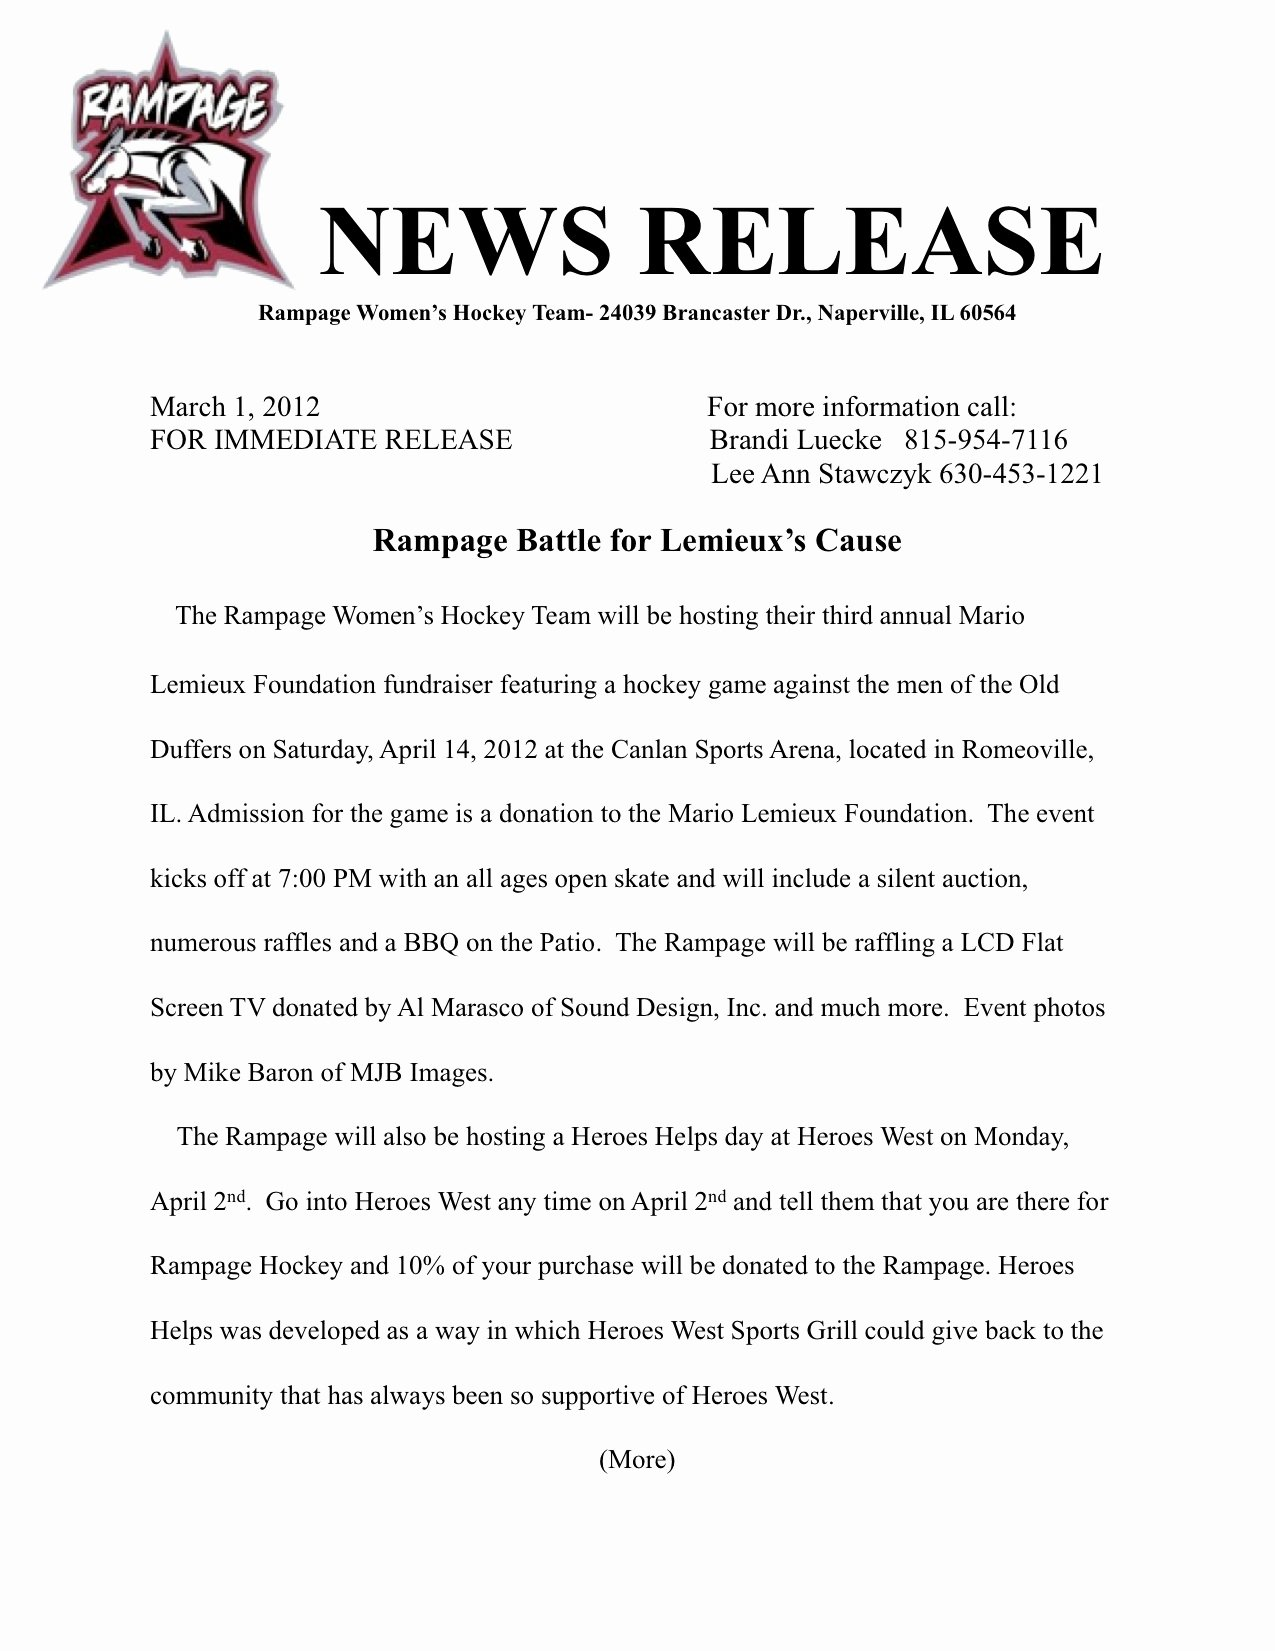 Event Press Release Template Inspirational Zzzzzz Romeoville Rampage Women S Ice Hockey Club